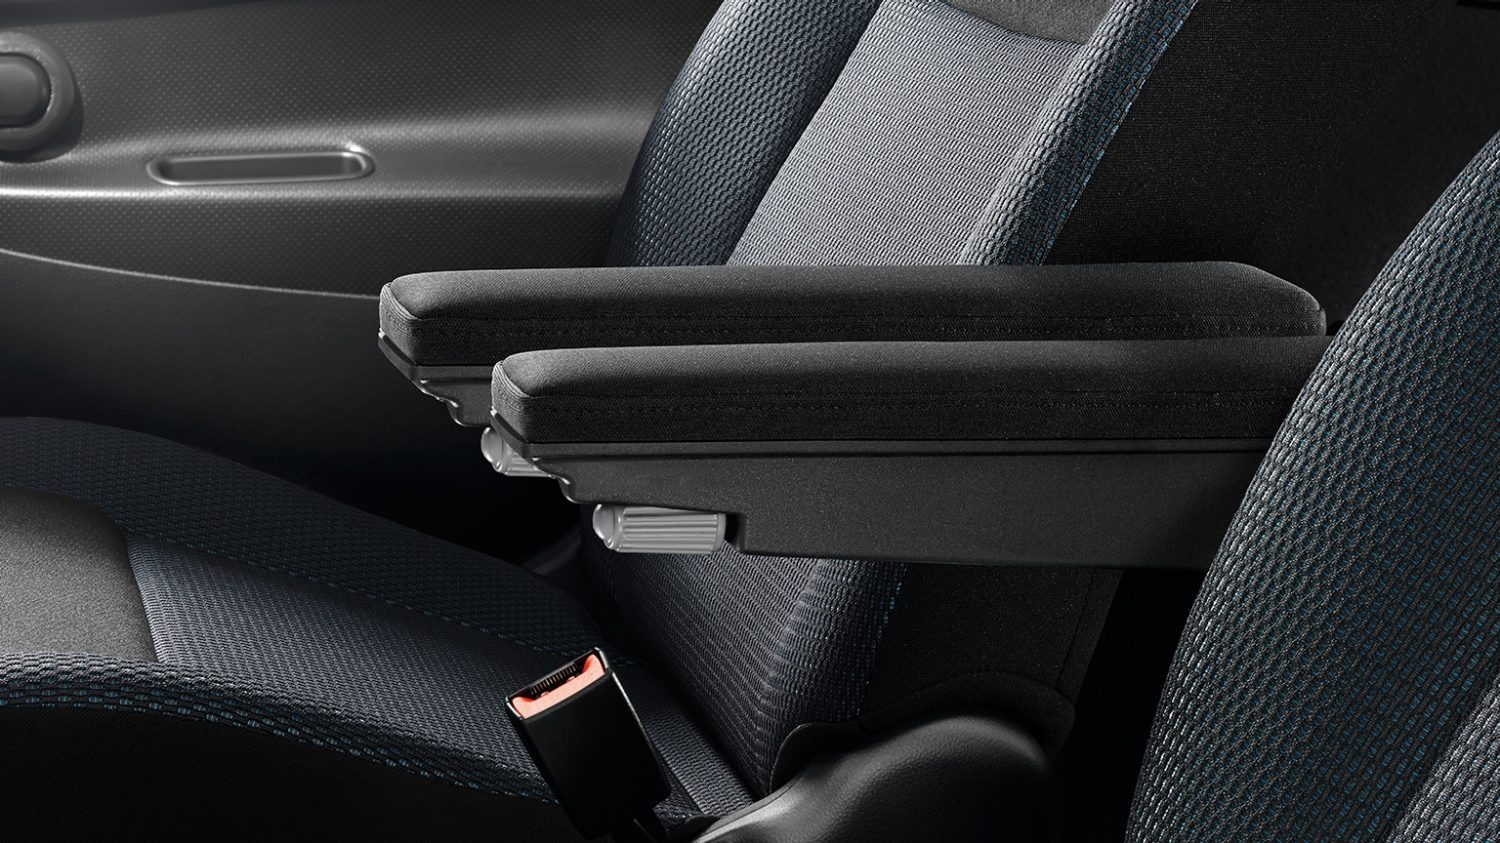 Nissan NV200 - Interior - Armrest double kit black textile